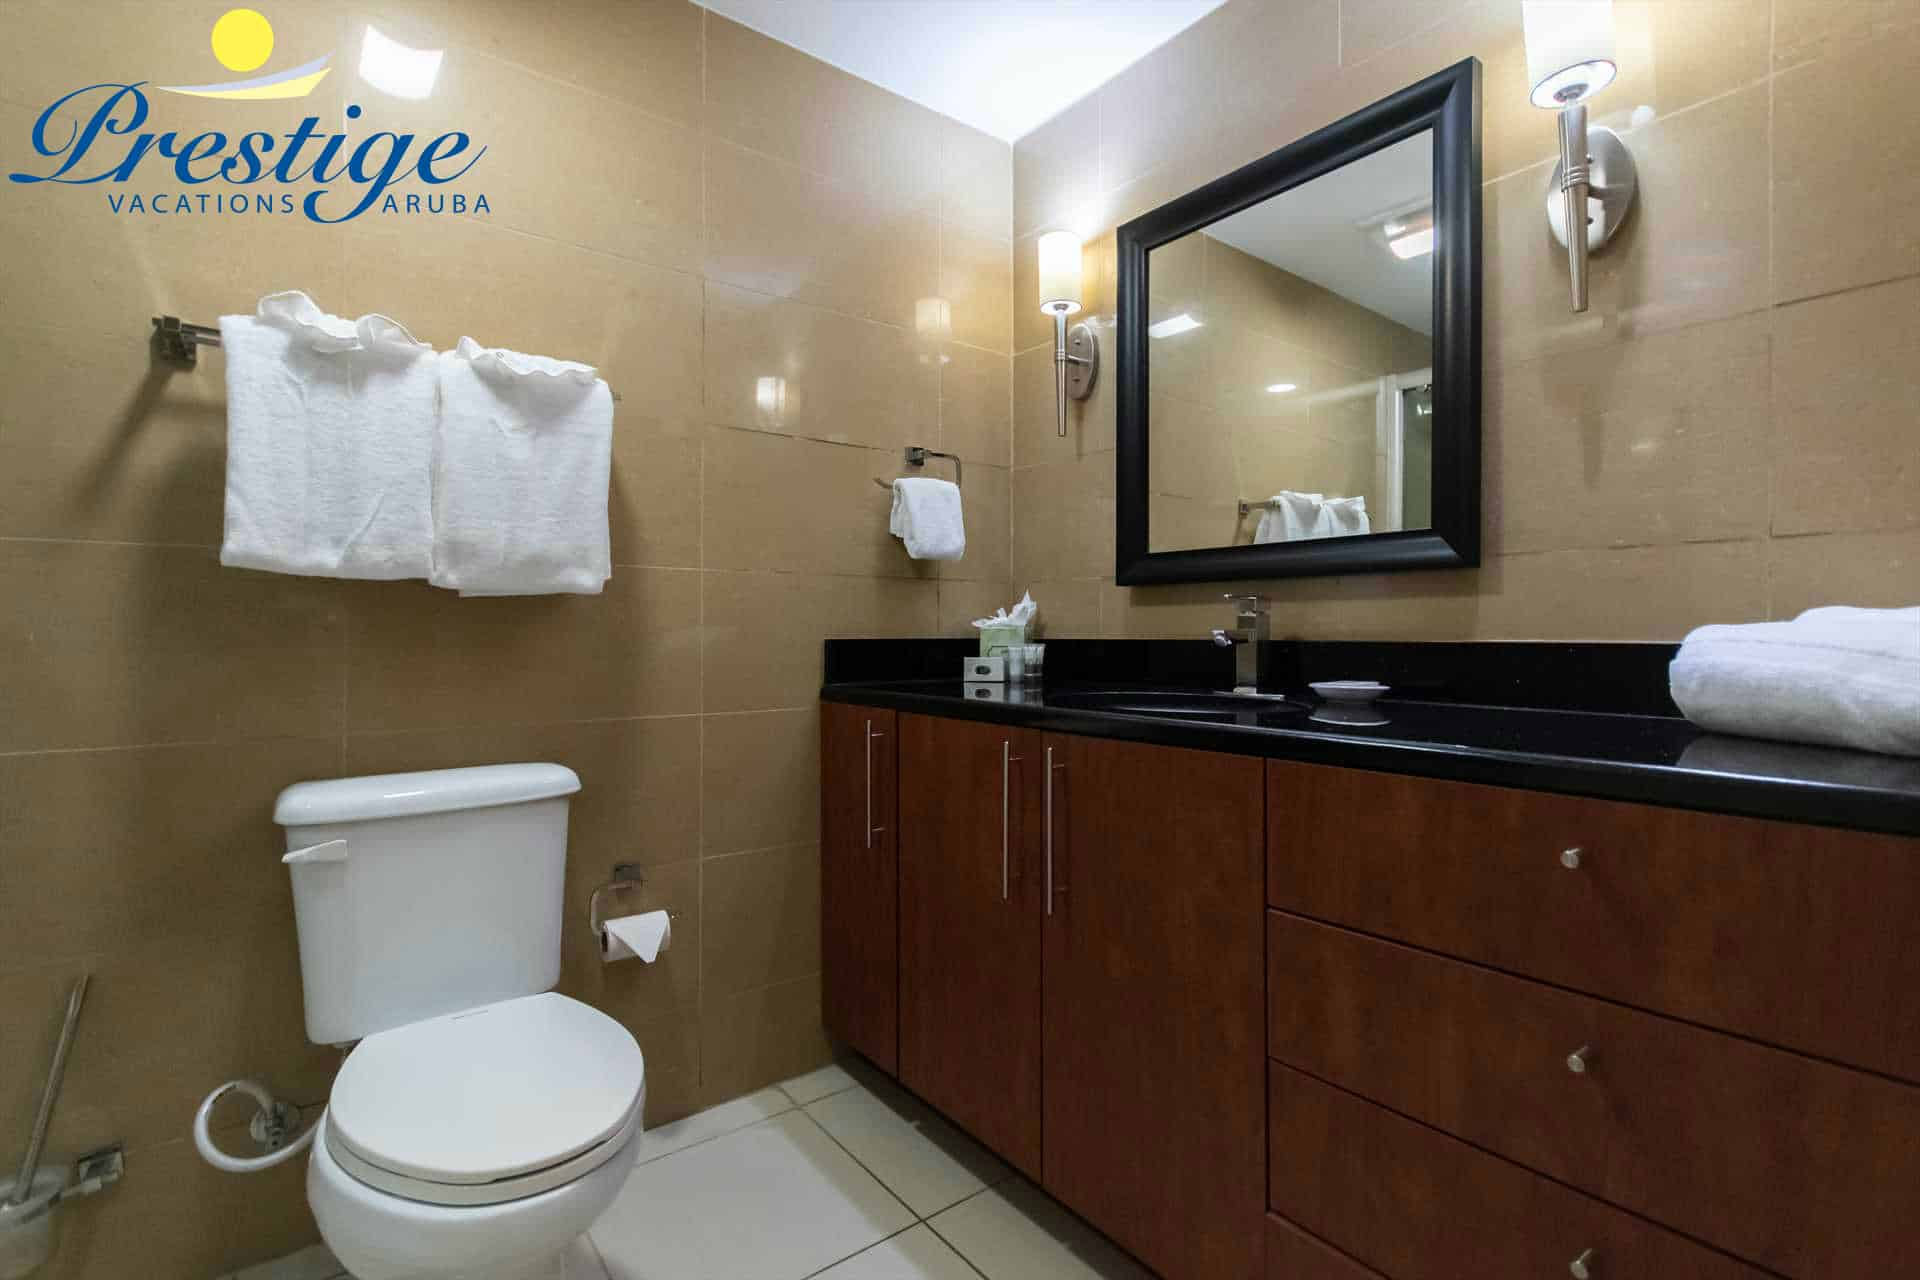 The bathroom with vanity area